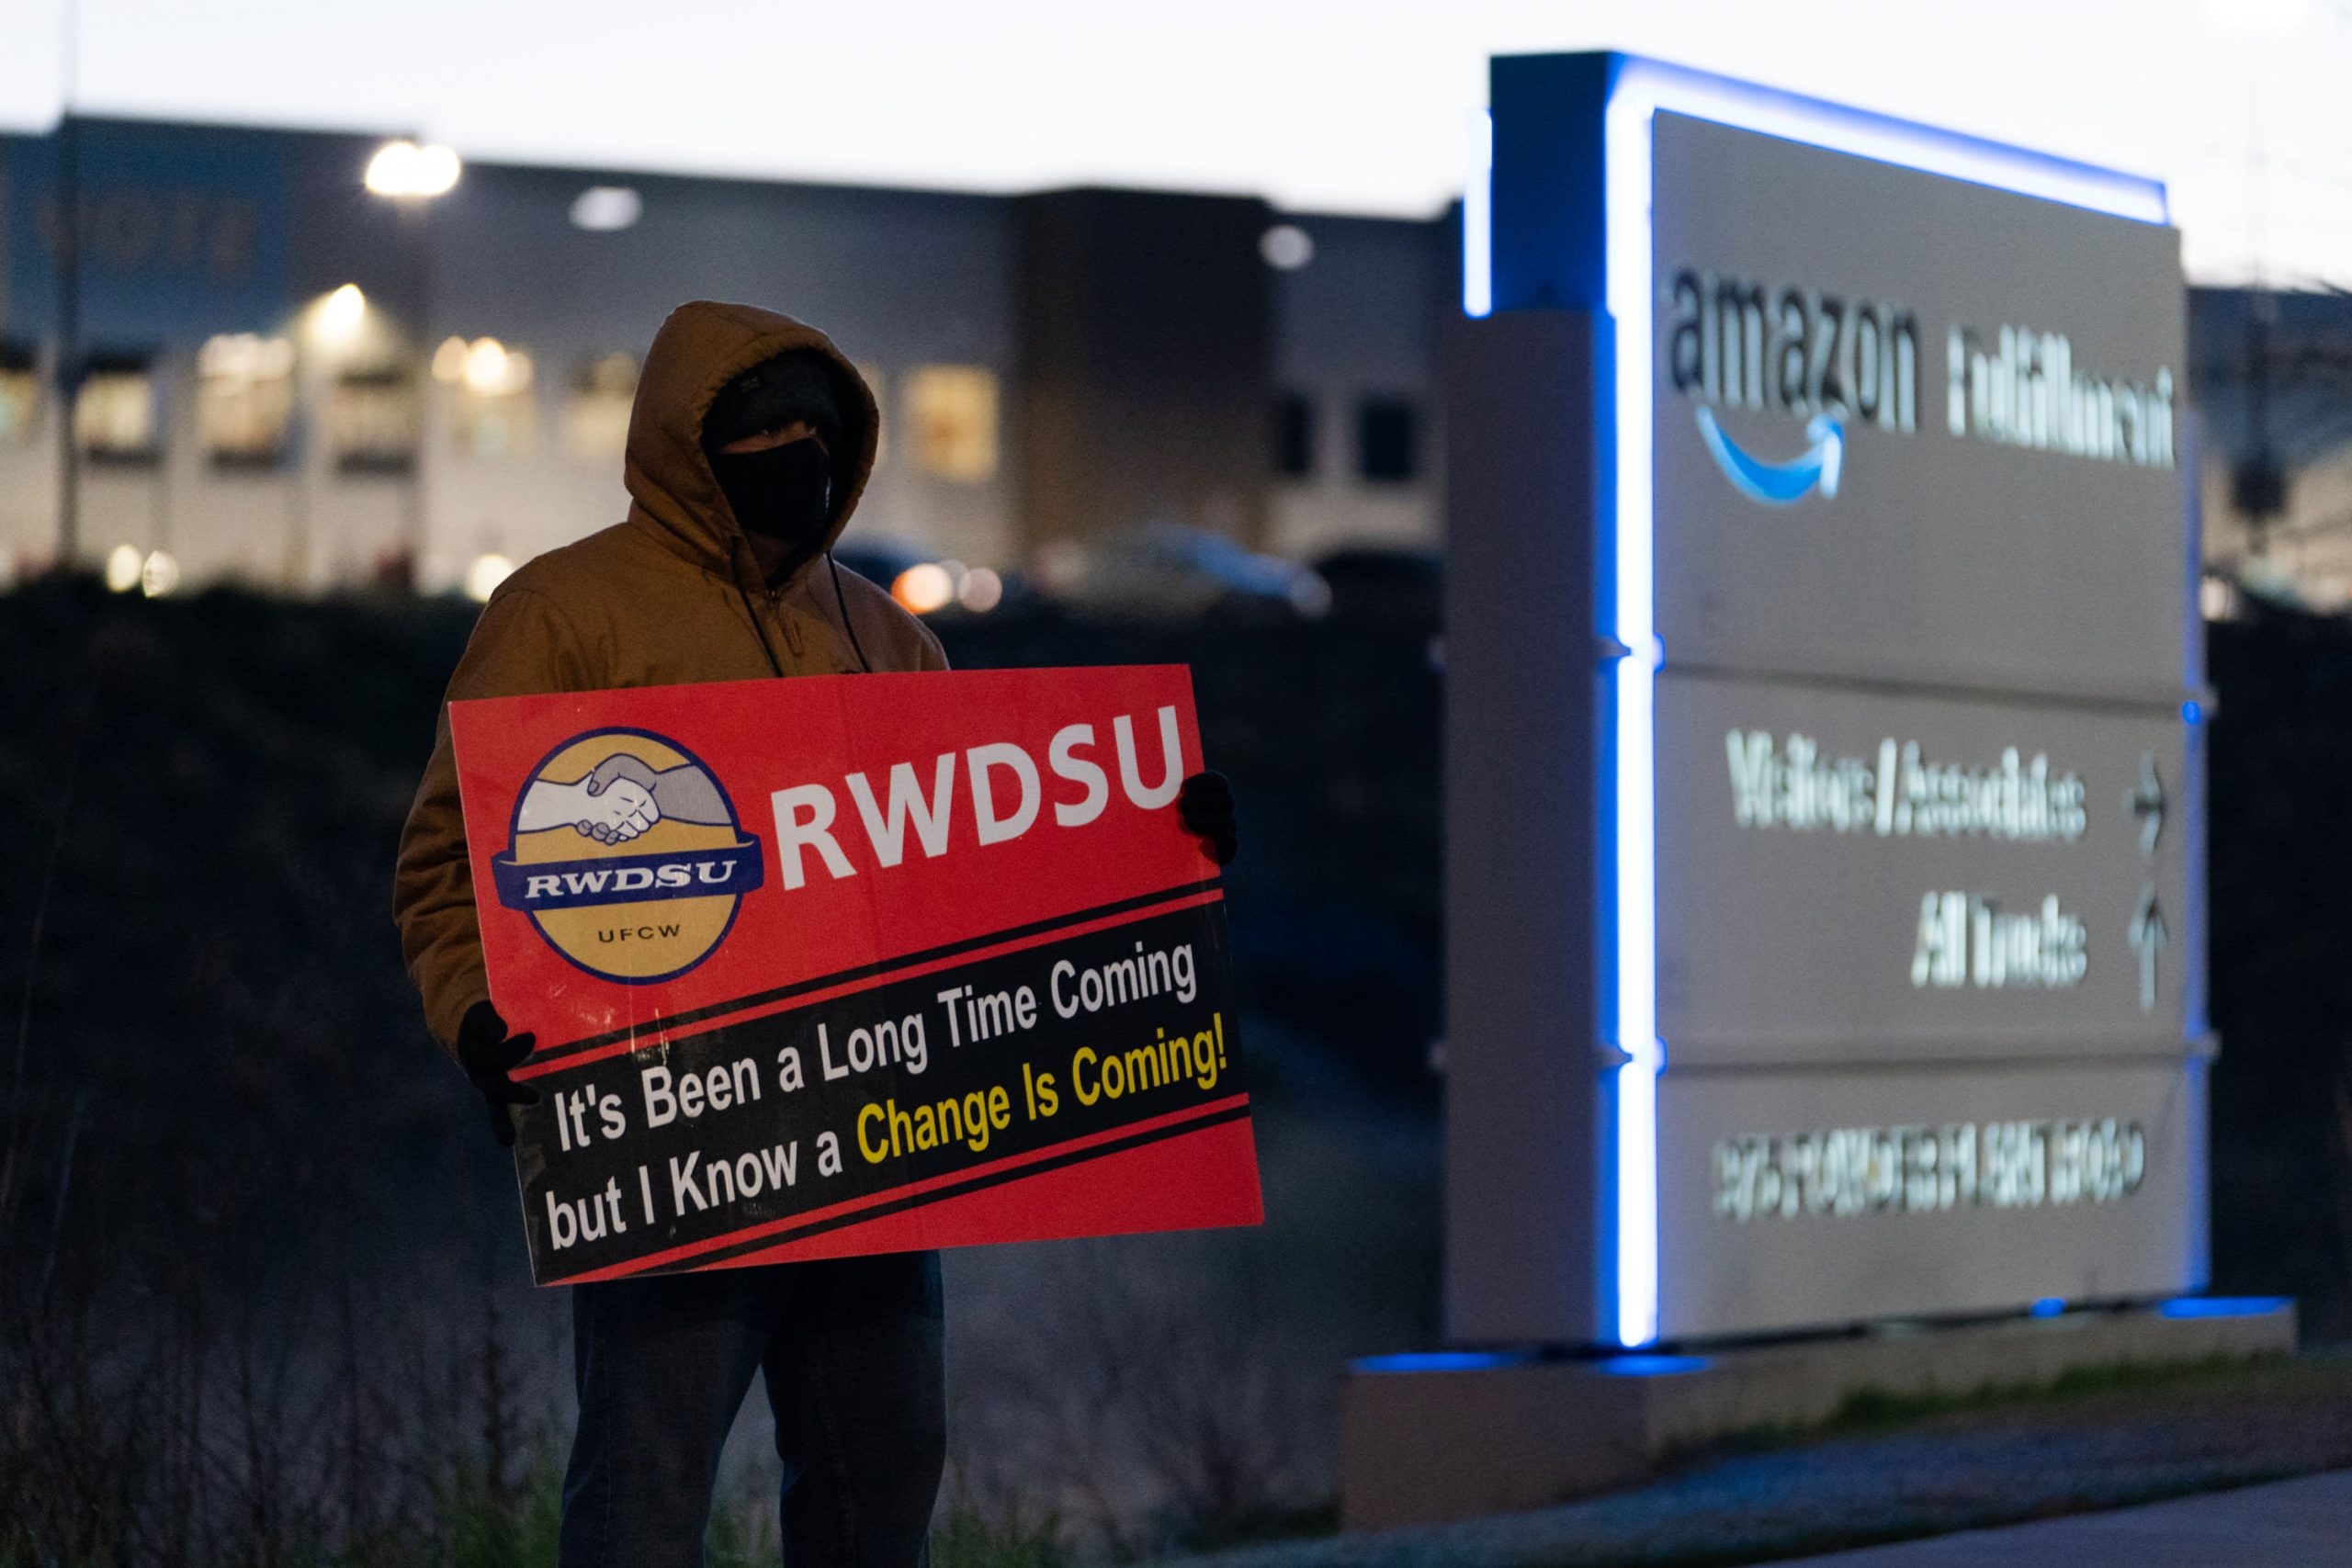 Amazon union vote count in Alabama: Live updates of results